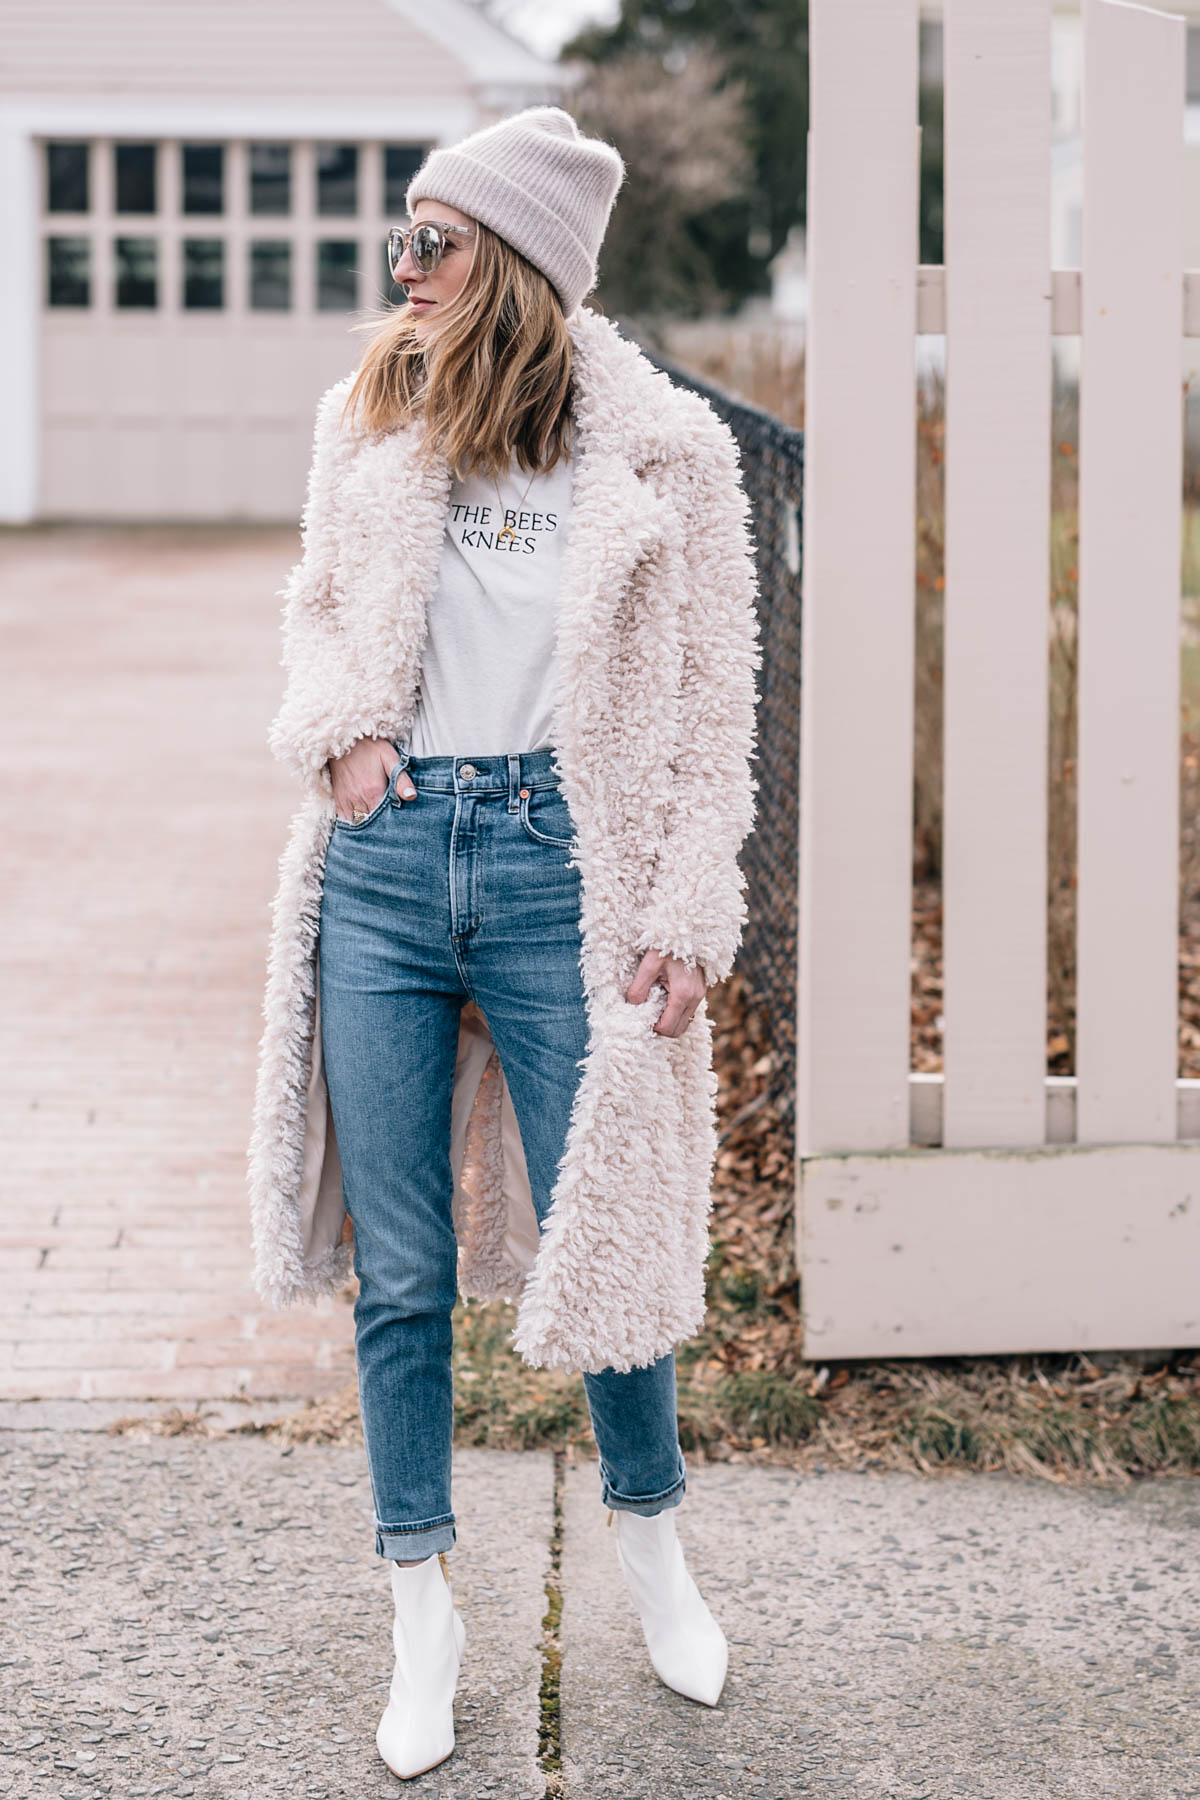 Jess Ann Kirby pairs a faux fur coat with skinny jeans and white ankle boots